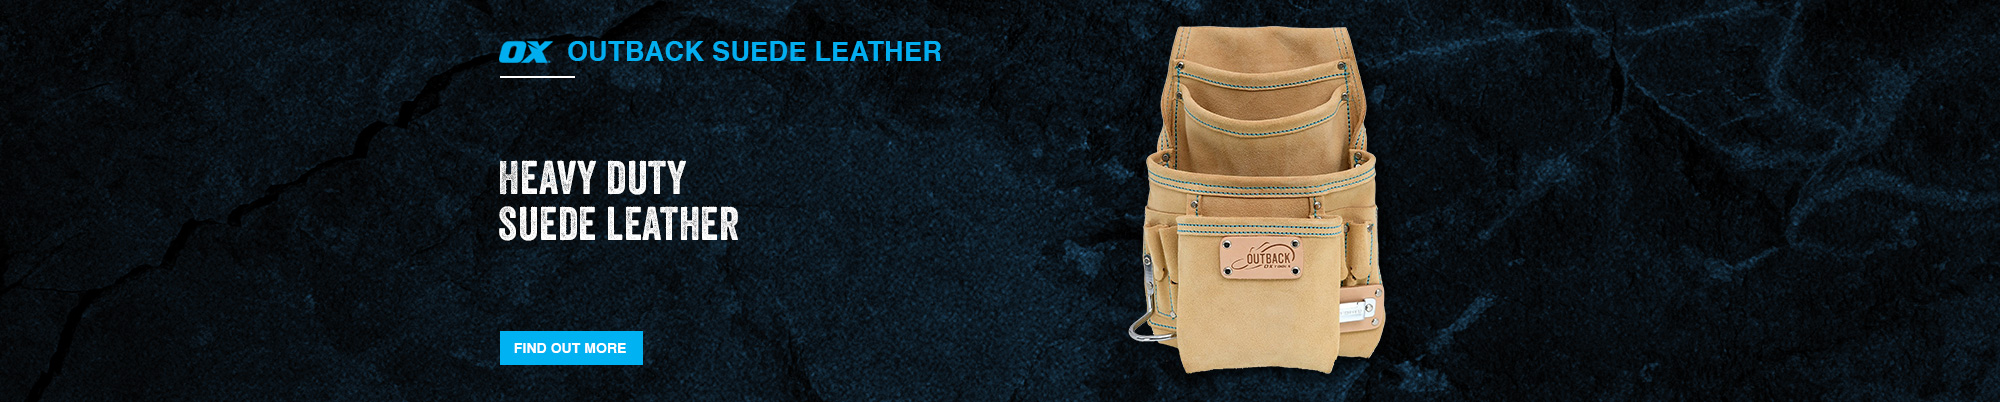 Outback Suede Leather